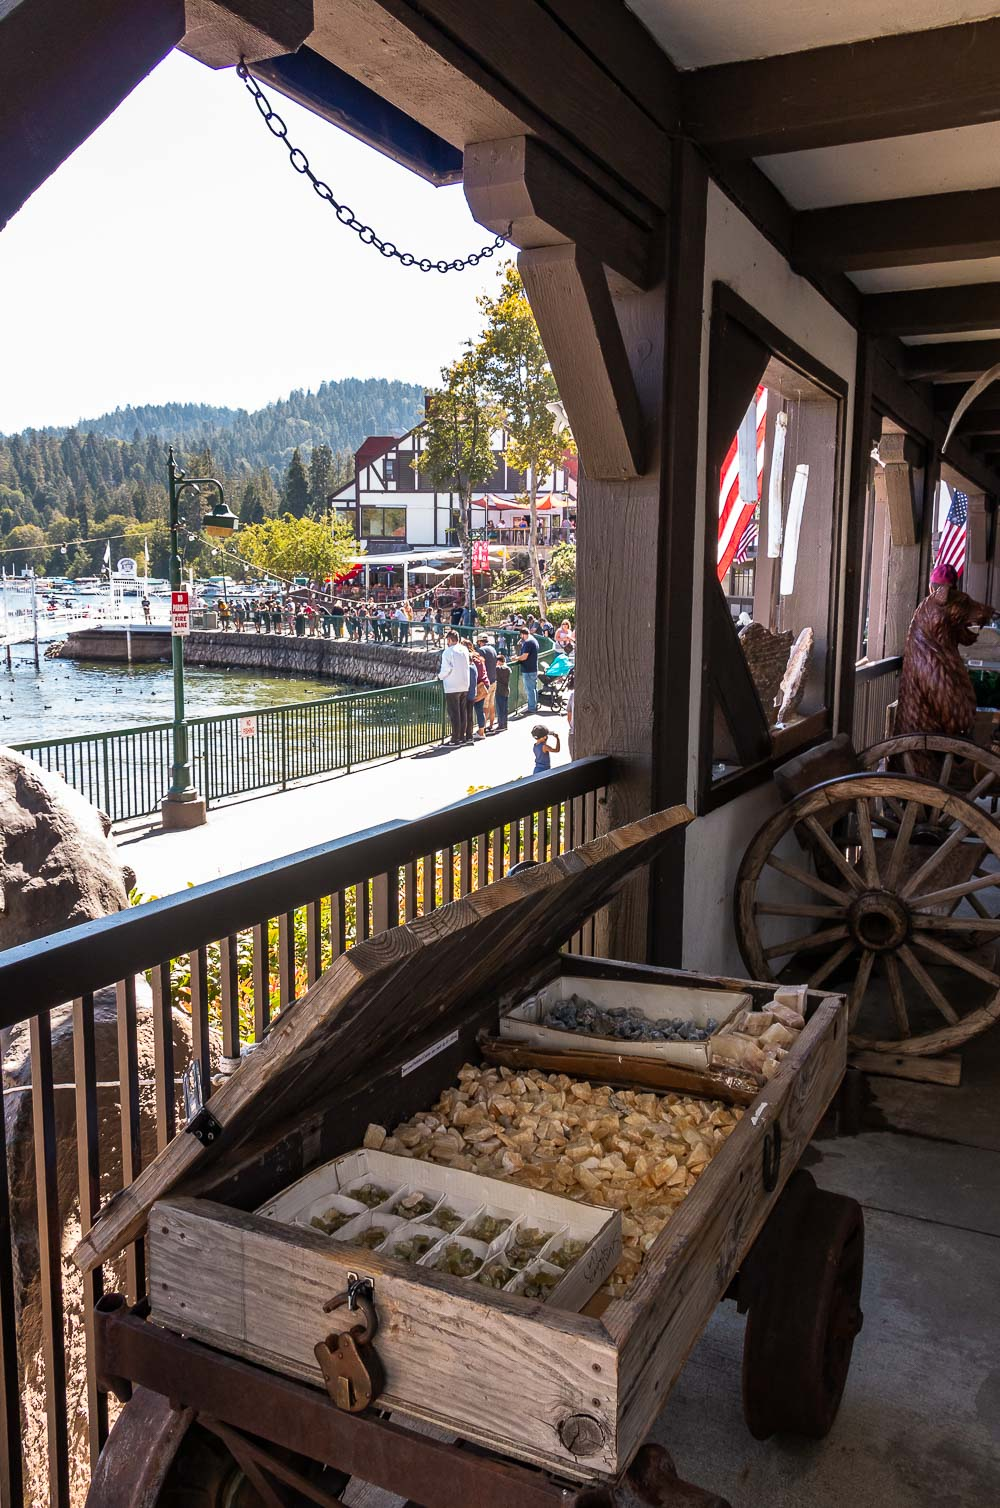 Shopping by the lake - Roads and Destinations _ roadsanddestinations.com